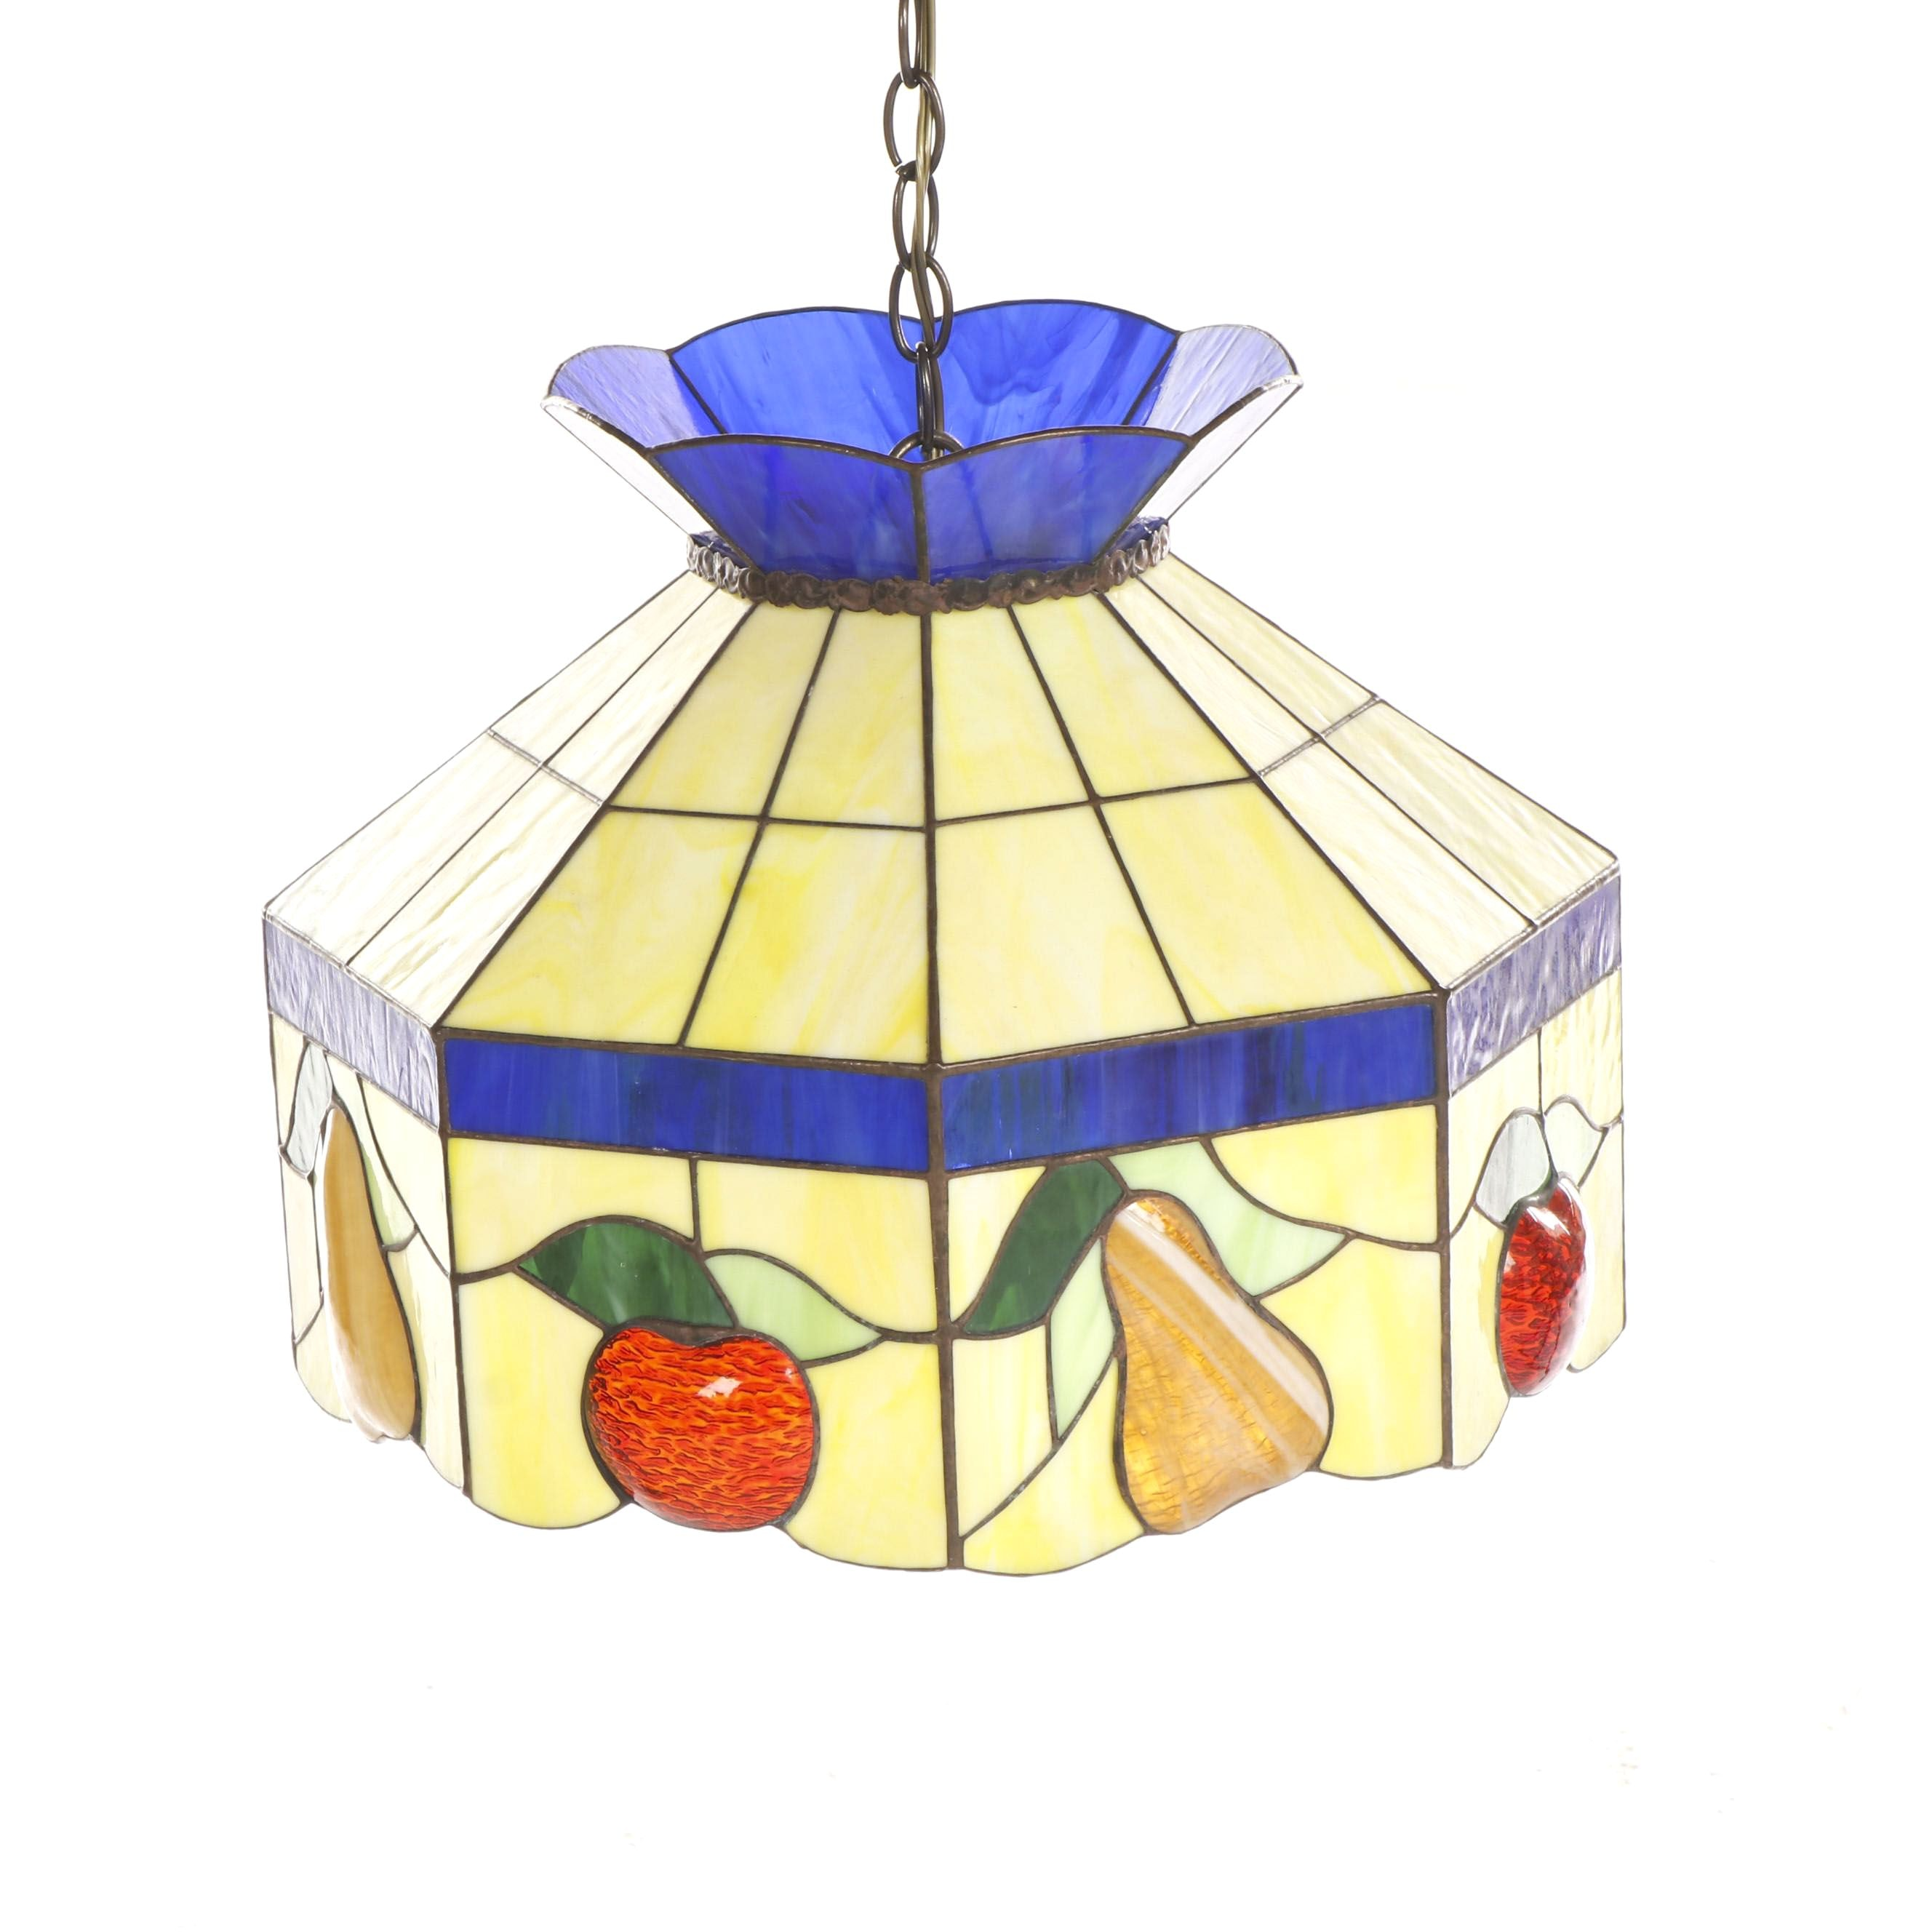 Leviton Slag and Stained Glass Ceiling Pendant Light with Fruit Motif